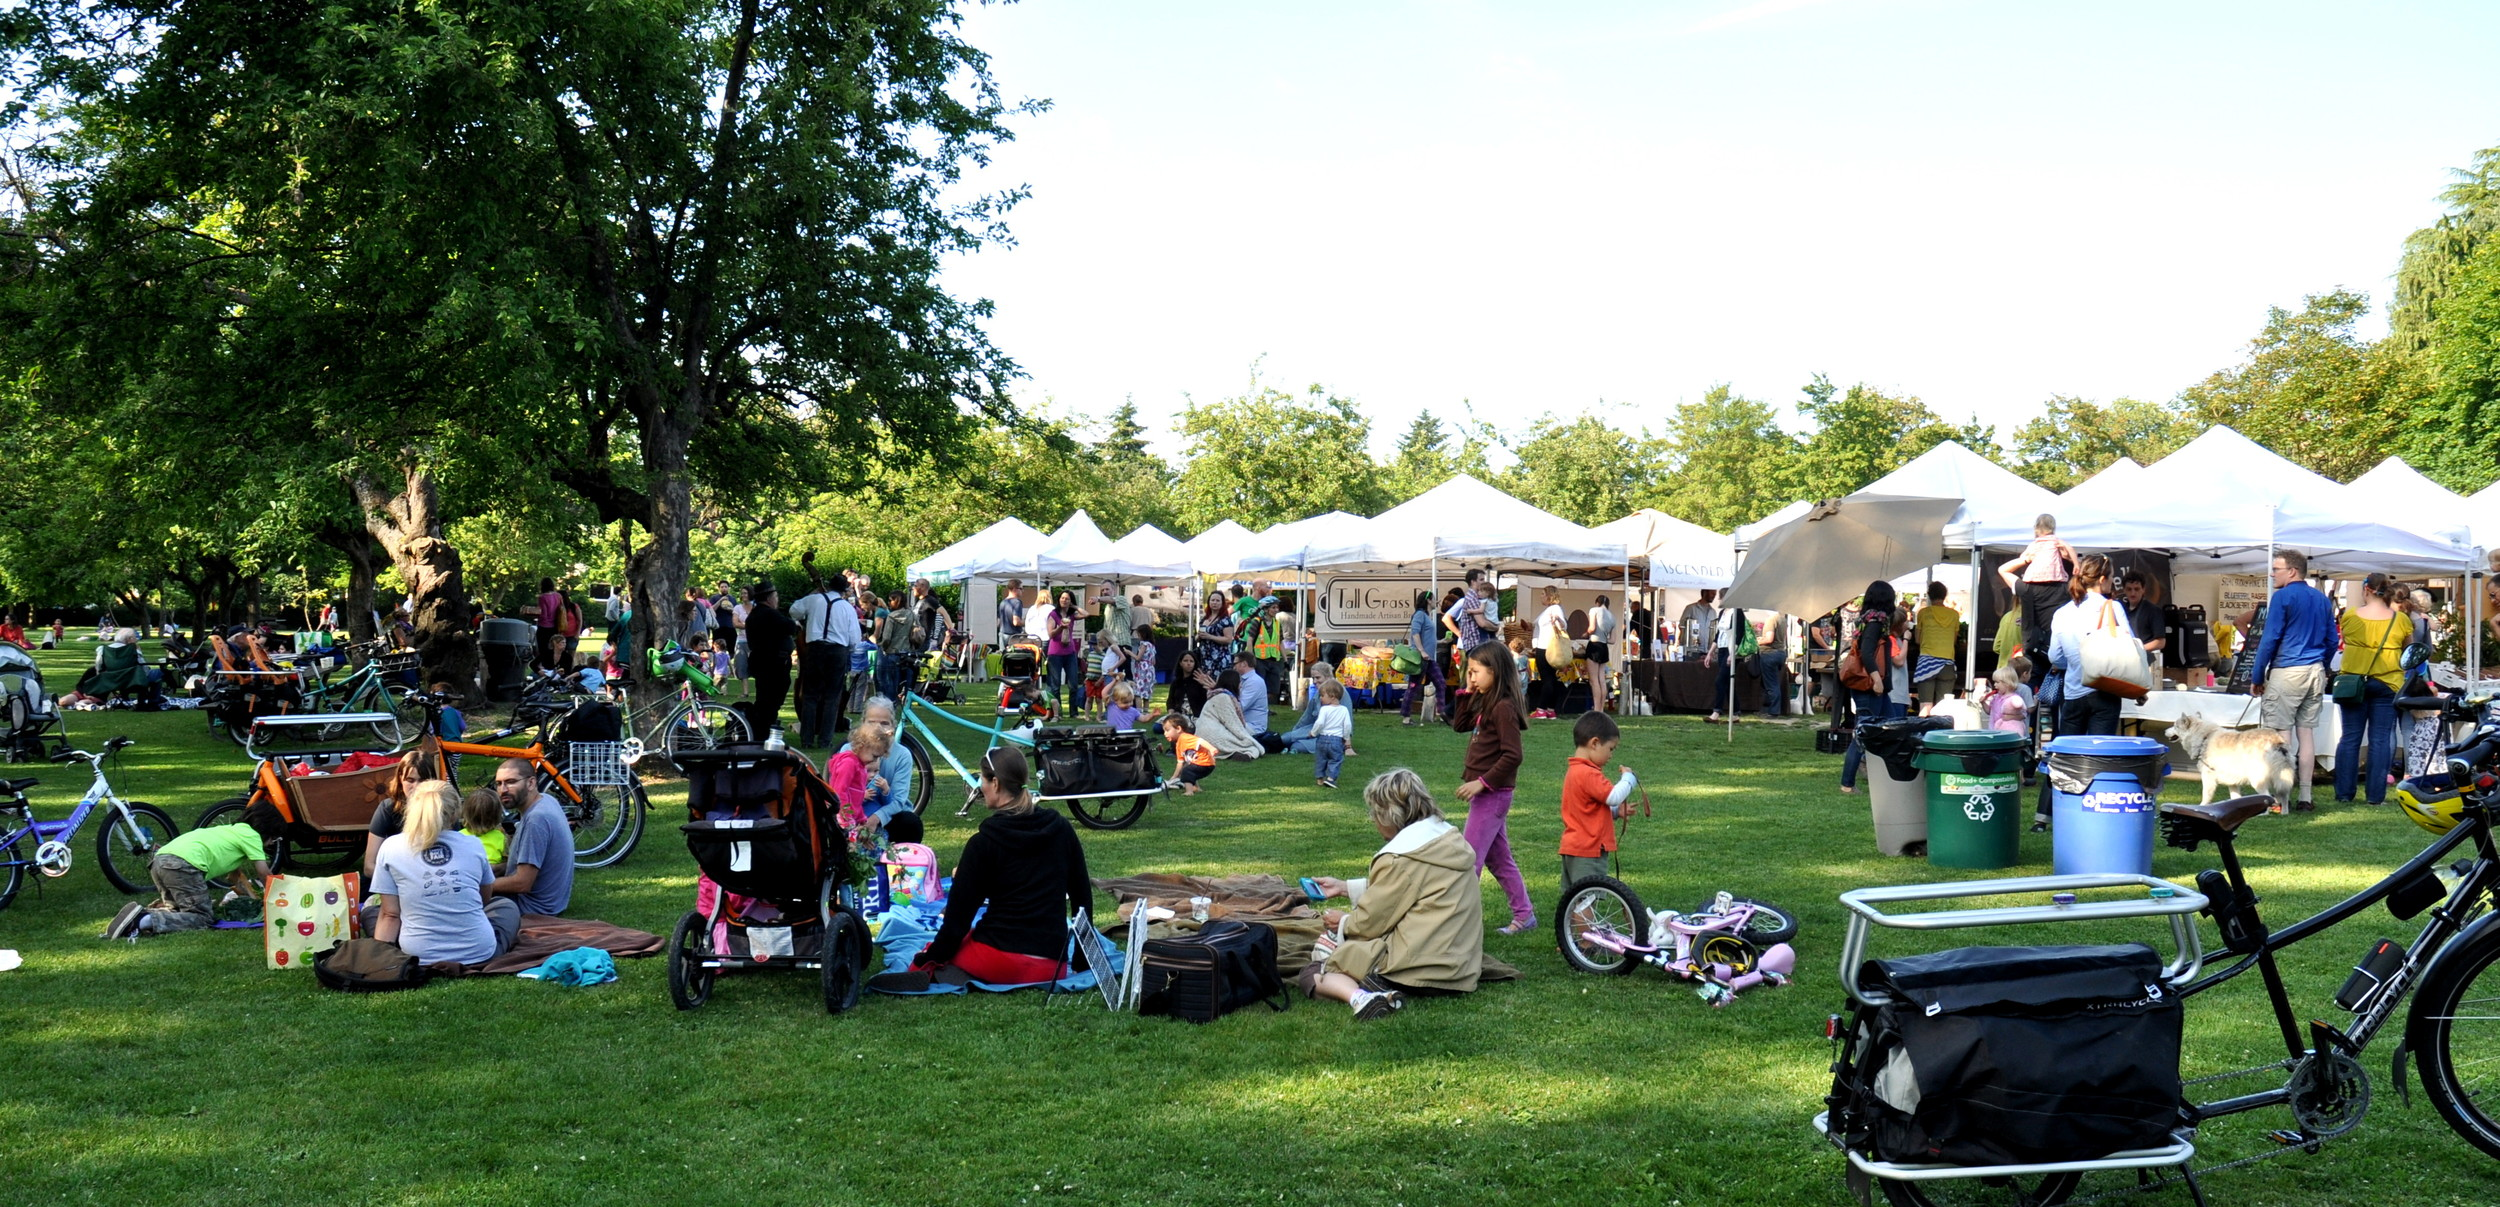 The picnic scene at your Wallingford Farmers Market. Copyright Zachary D. Lyons.